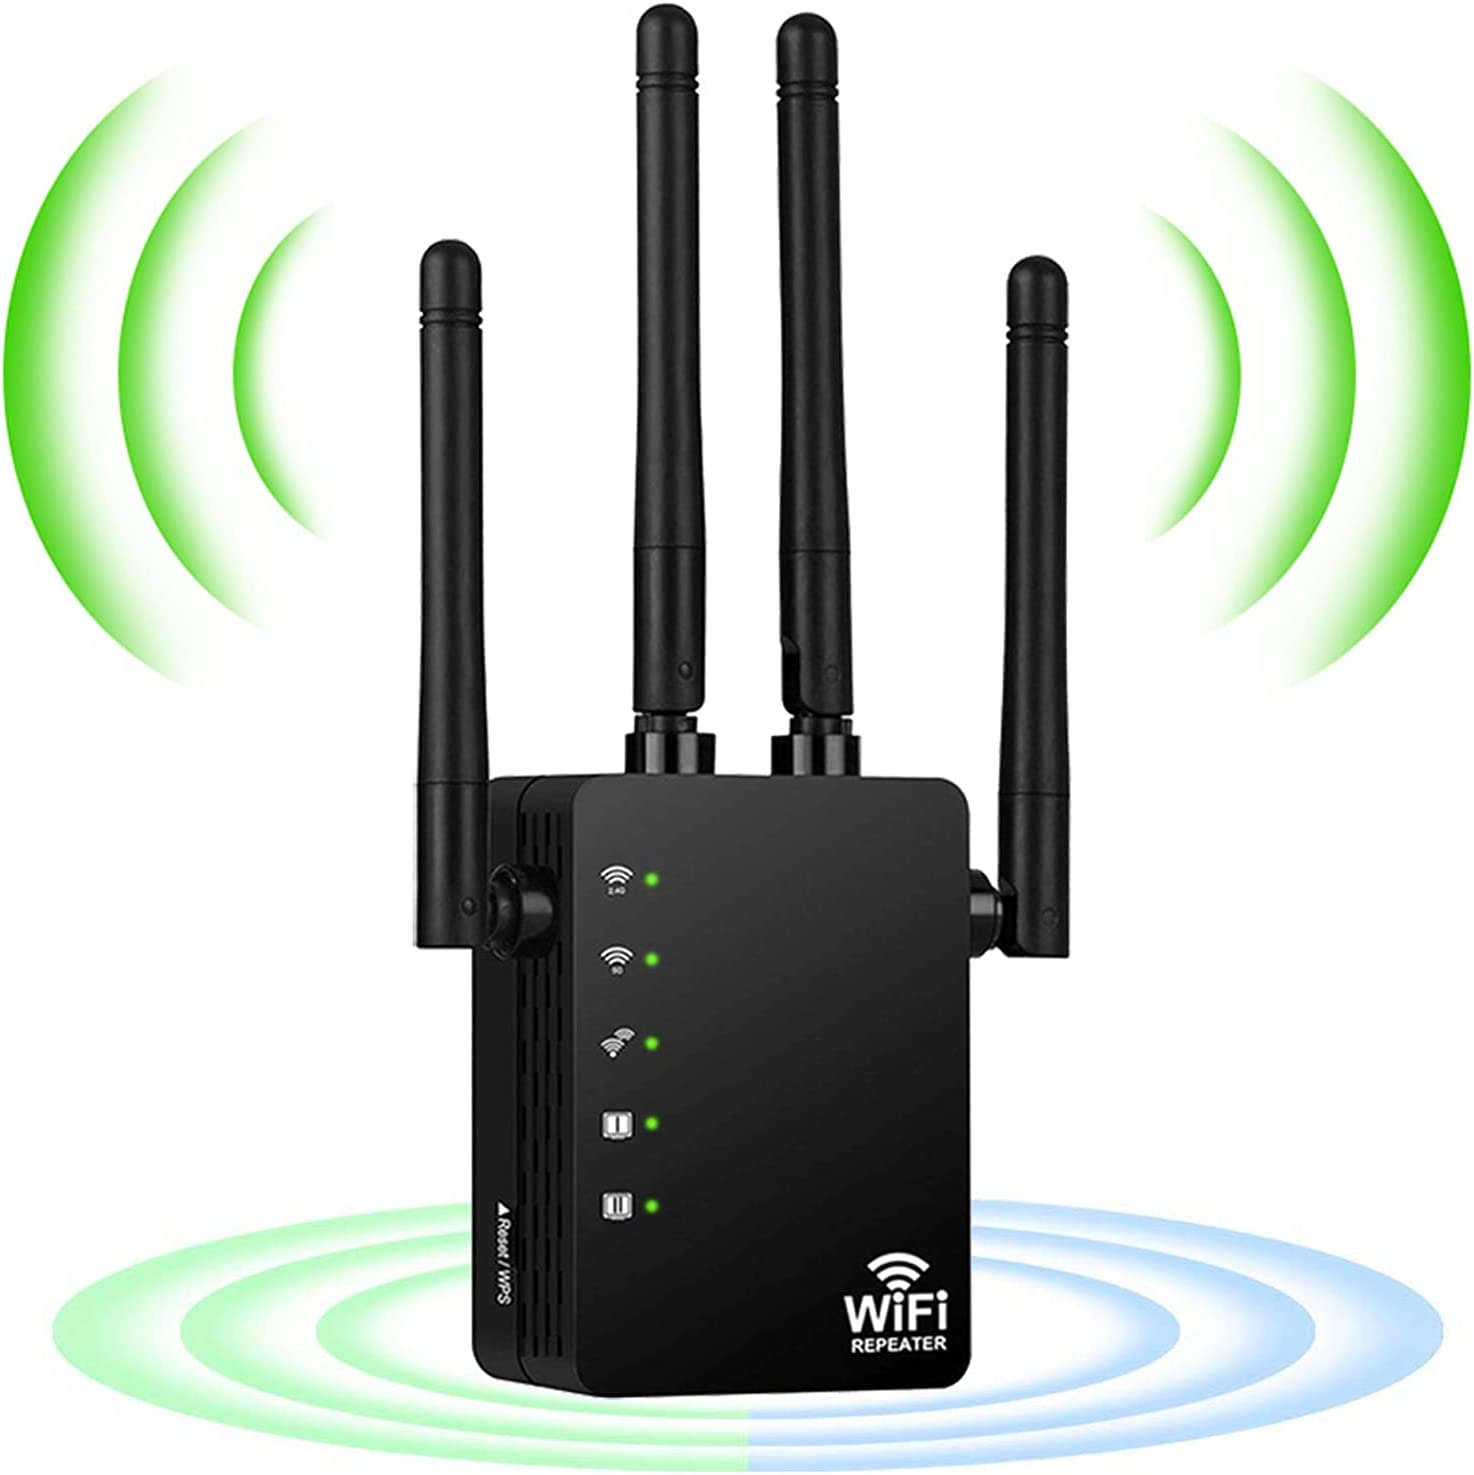 AC1200 WiFi Extender, WiFi Extenders Signal Booster for Home, 1200Mbps 2.4G & 5G Dual Band WiFi Booster, WiFi Repeater 4 Antennas Full Coverage WiFi Signal Booster to Smart Home & Alexa Devices